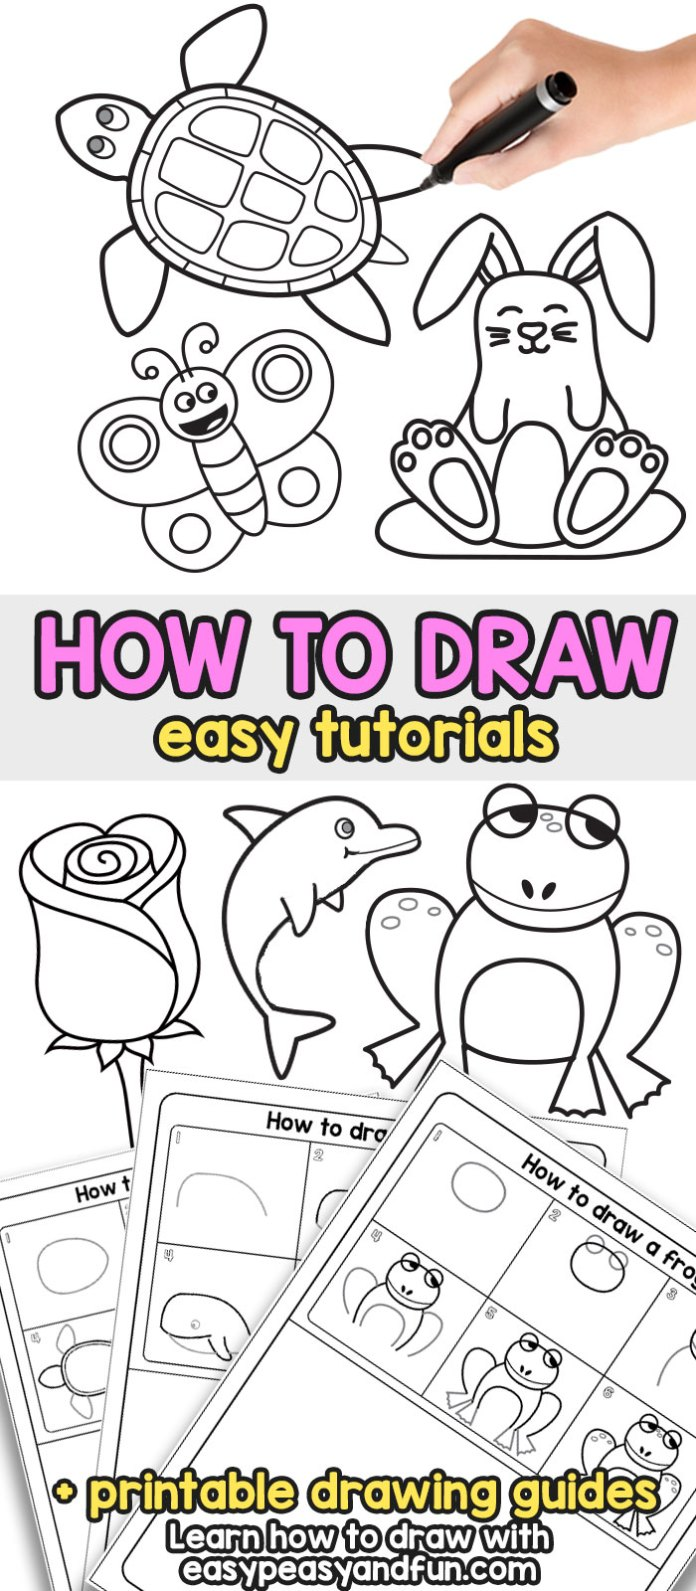 How to Draw - Step by Step Drawing For Kids and Beginners #howtodraw